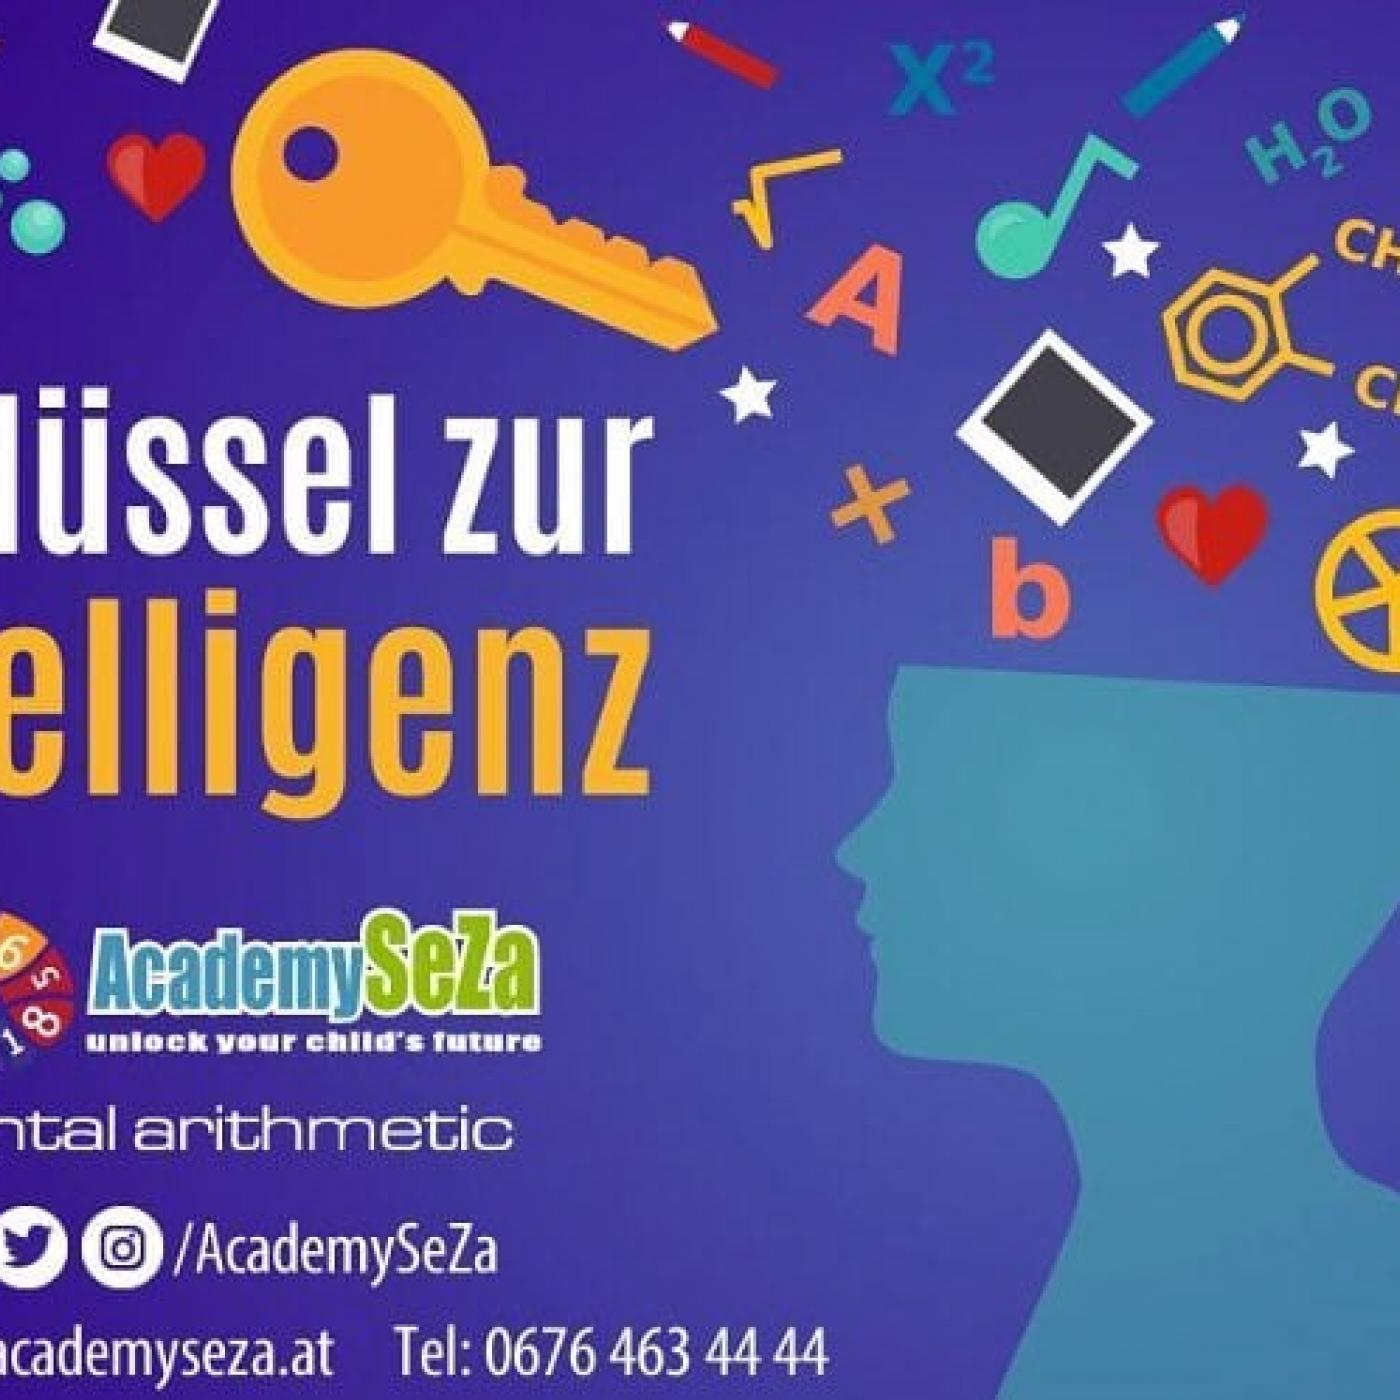 Intelligenztraining in der Academy SeZa in Linz.